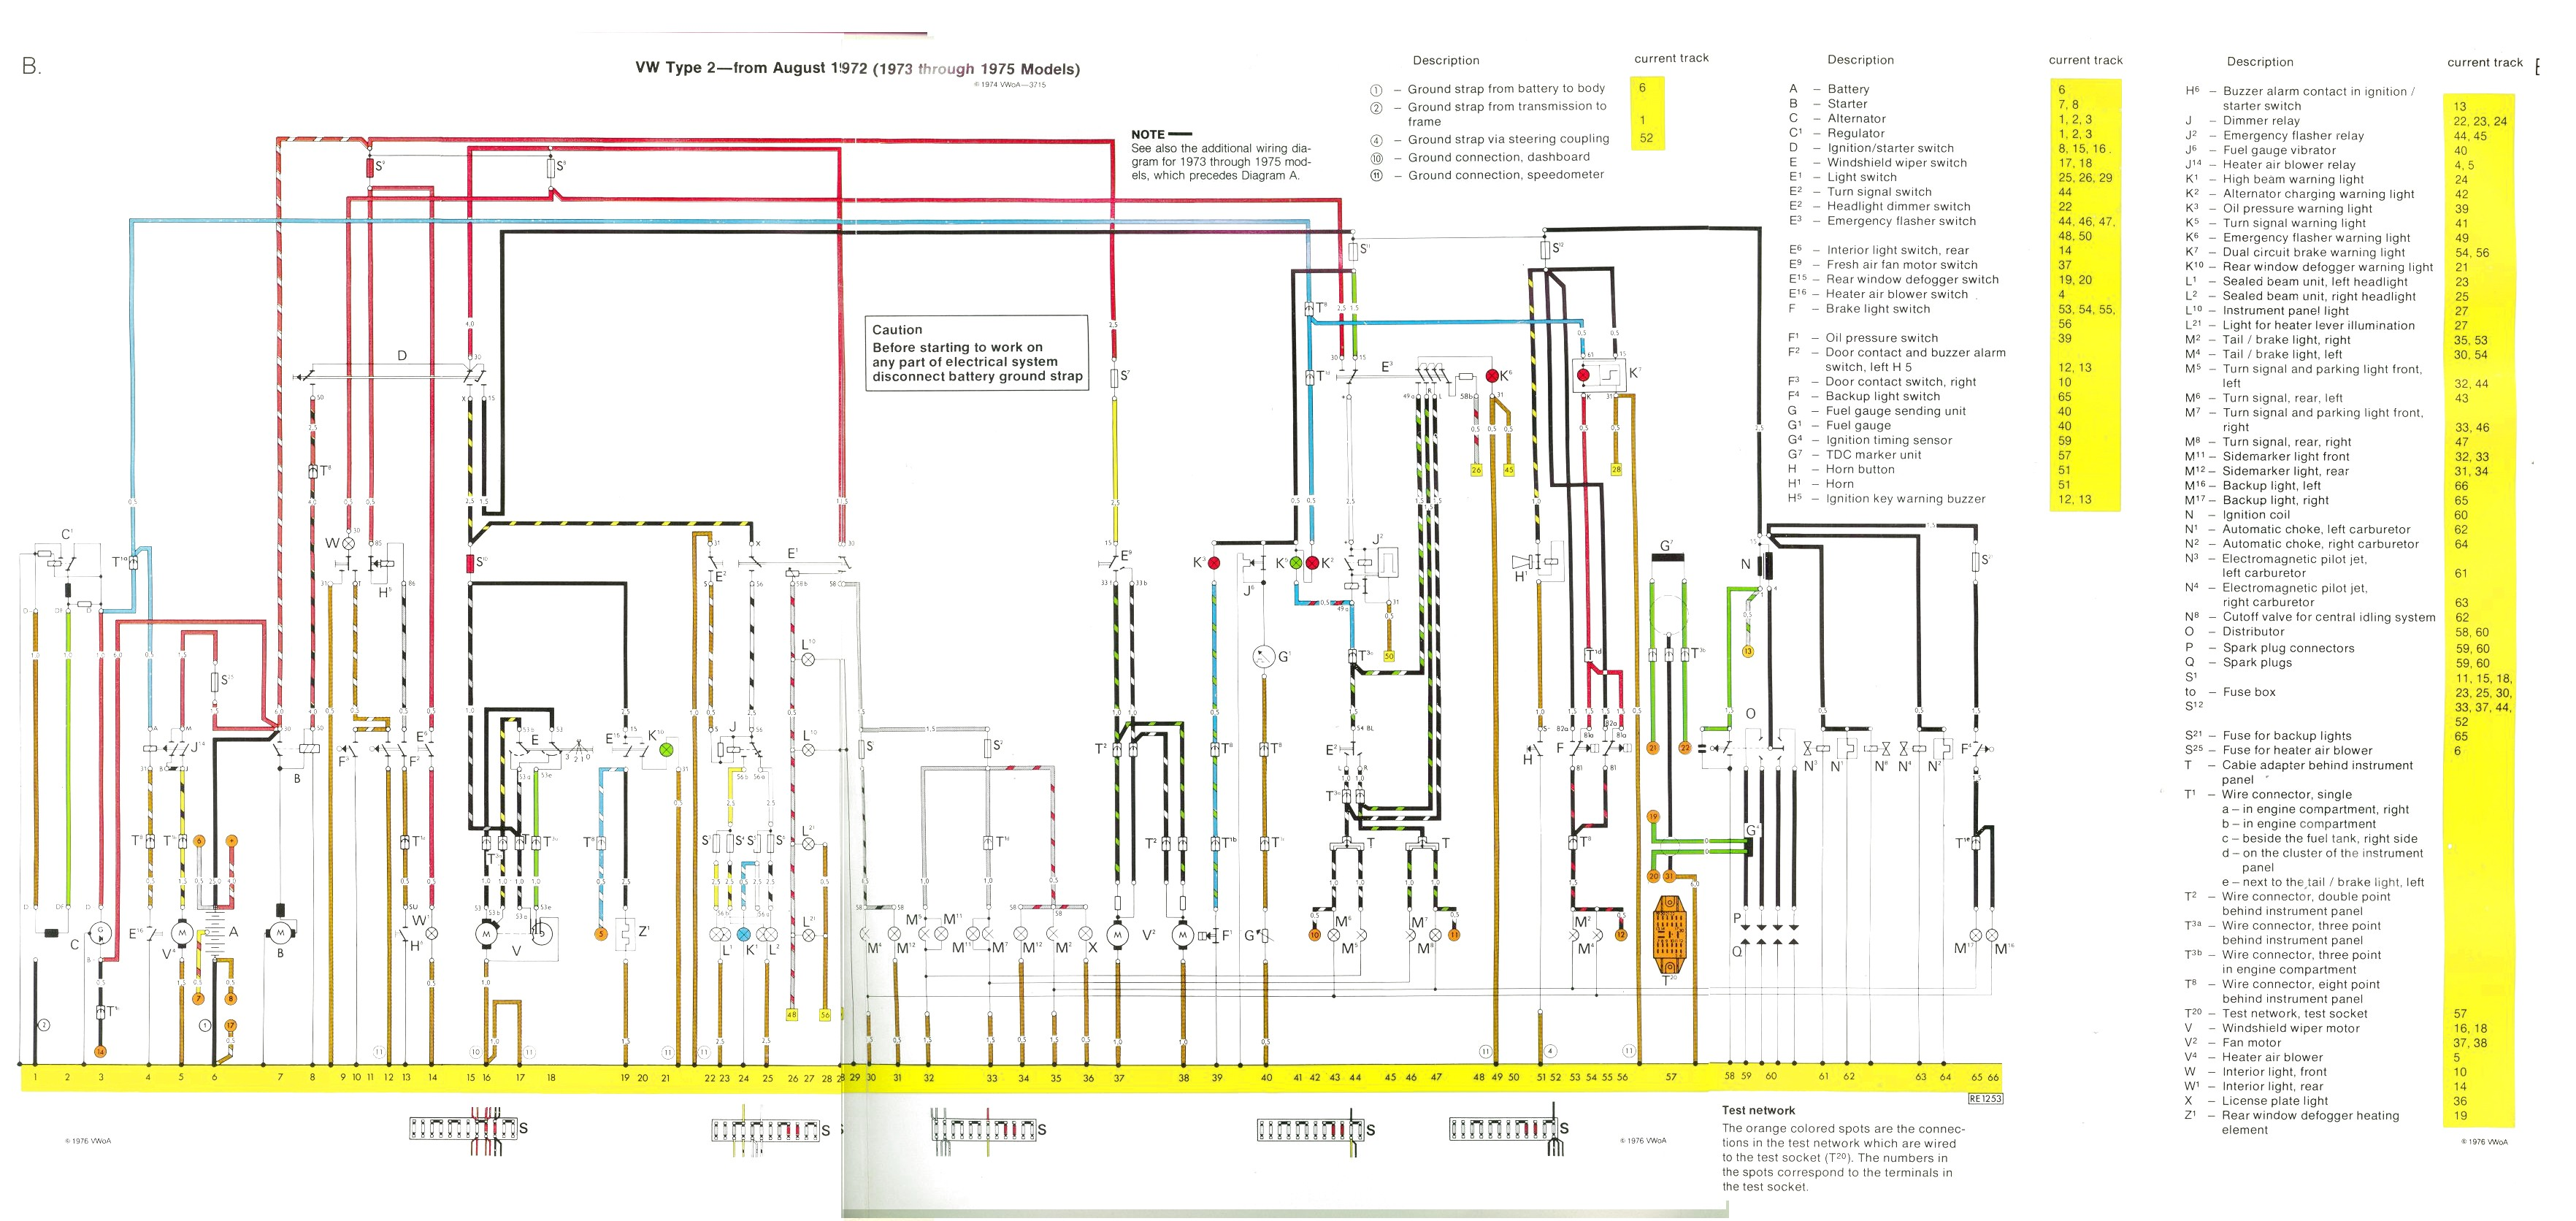 Groovy Ic Bus Wiring Diagram Wiring Diagrams For Your Car Or Truck Dandim Mohammedshrine Wiring Diagrams Dandimmohammedshrineorg